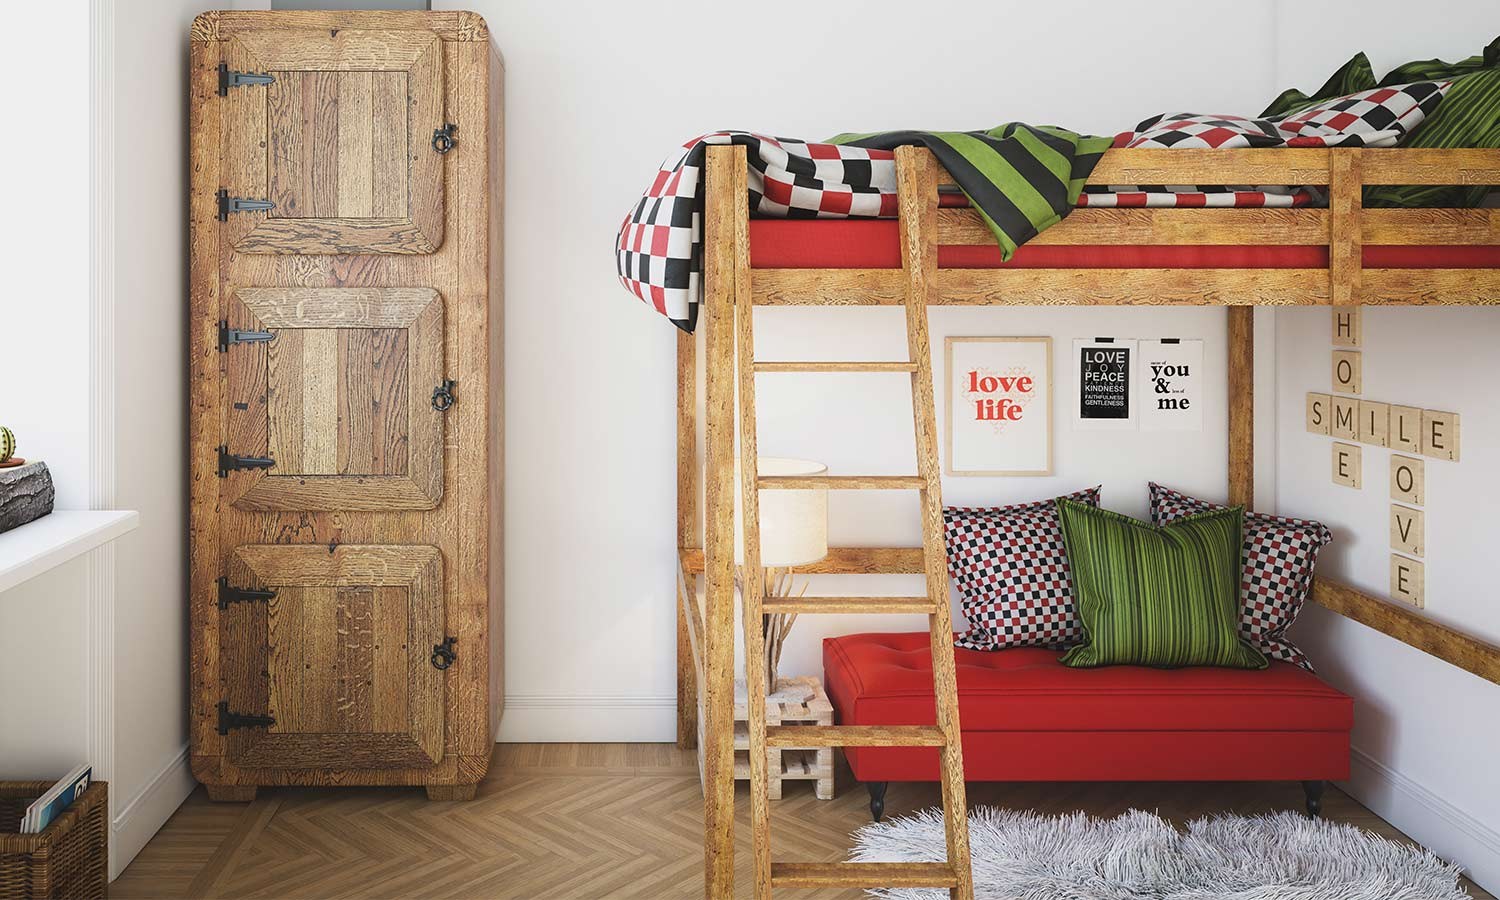 A bunk bed with a loft for a futon underneath